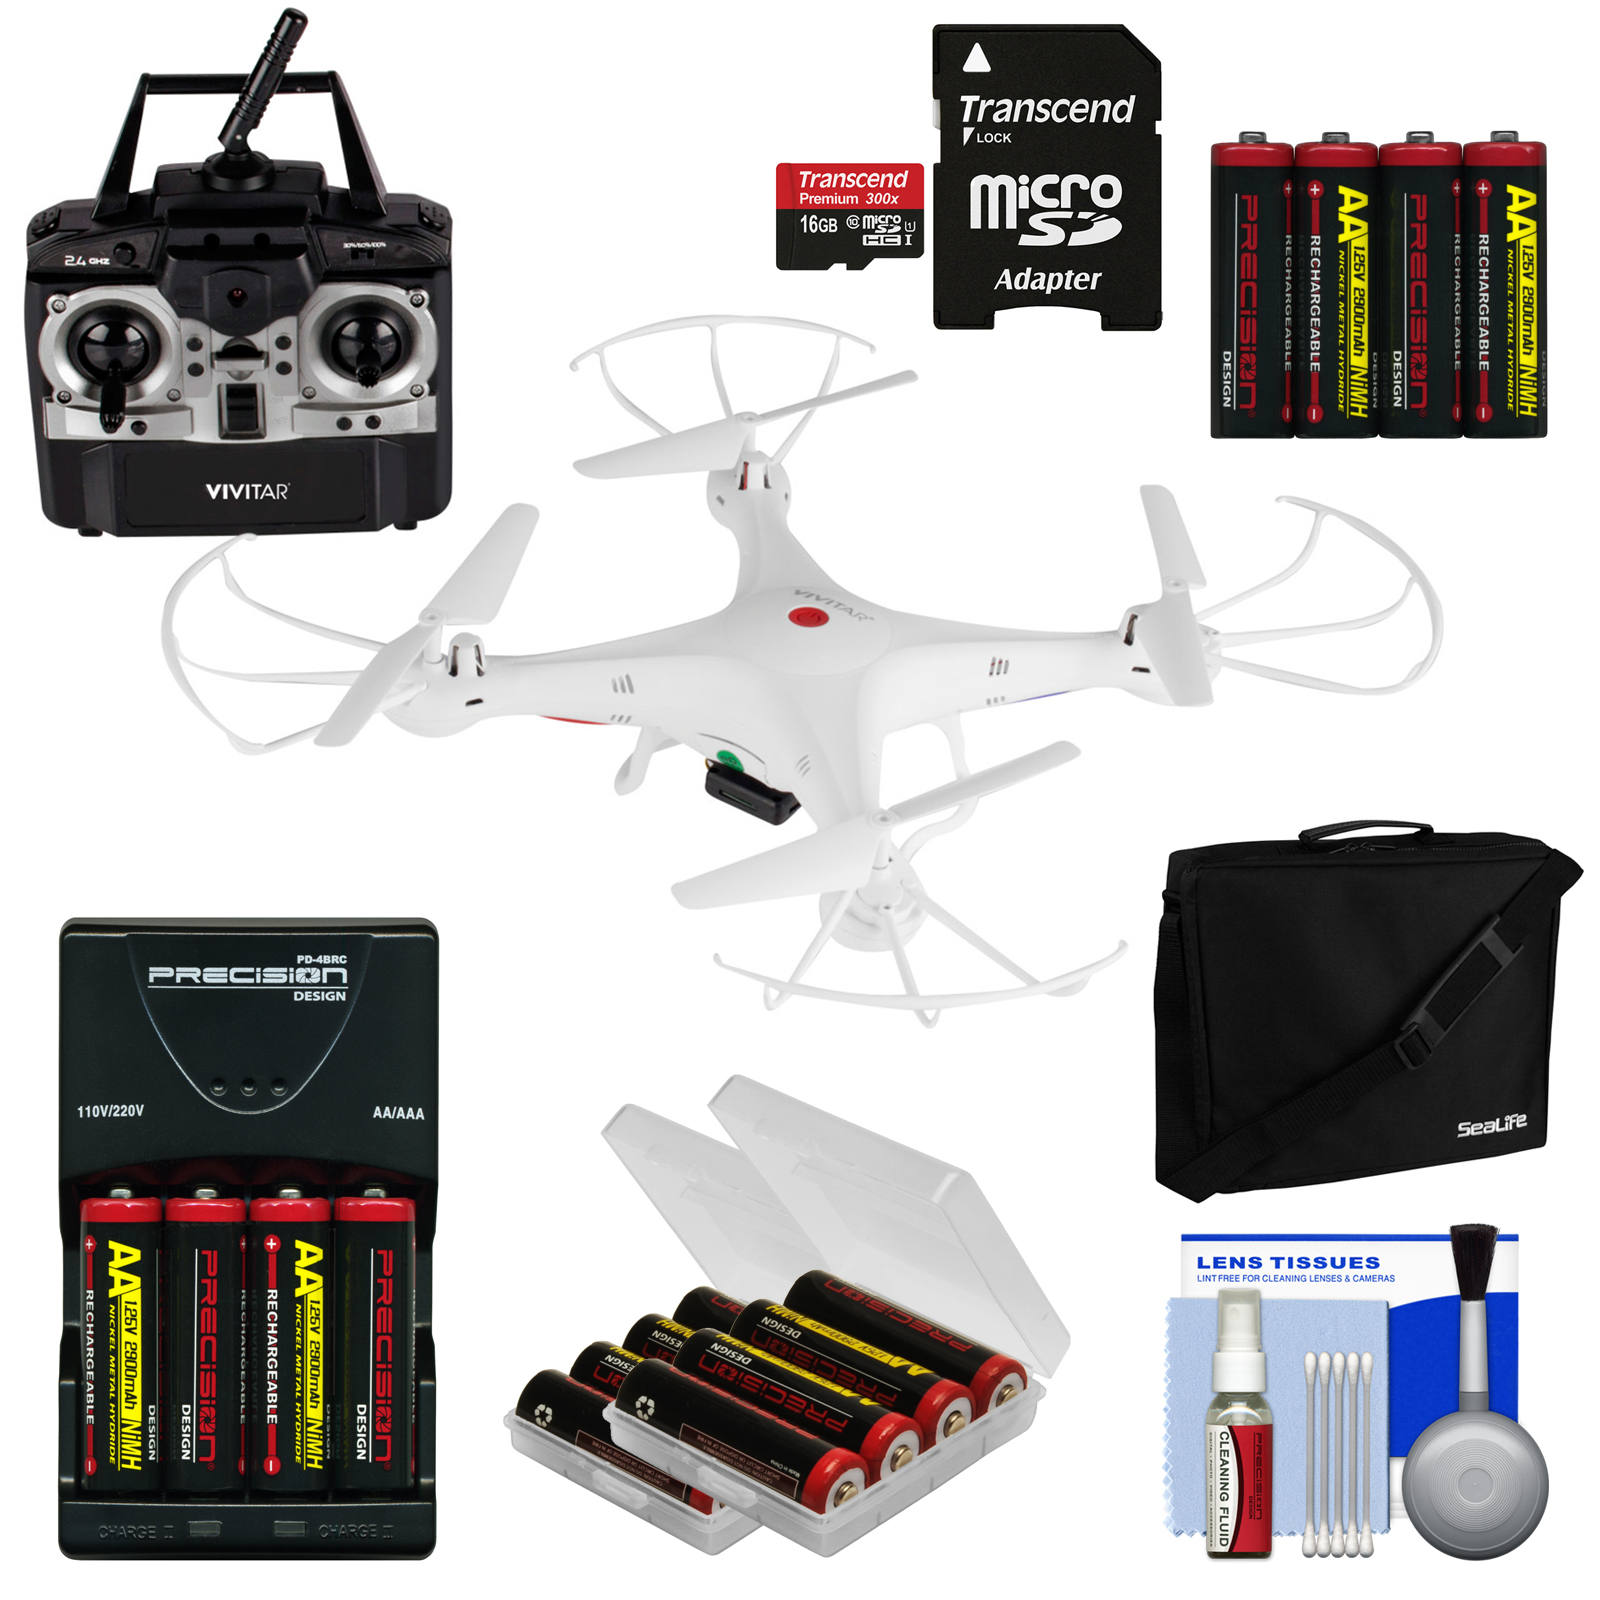 Vivitar DRC-120 Camera Aerial Quadcopter Drone (White) With 16GB Card + Case + Battery + Case + Kit